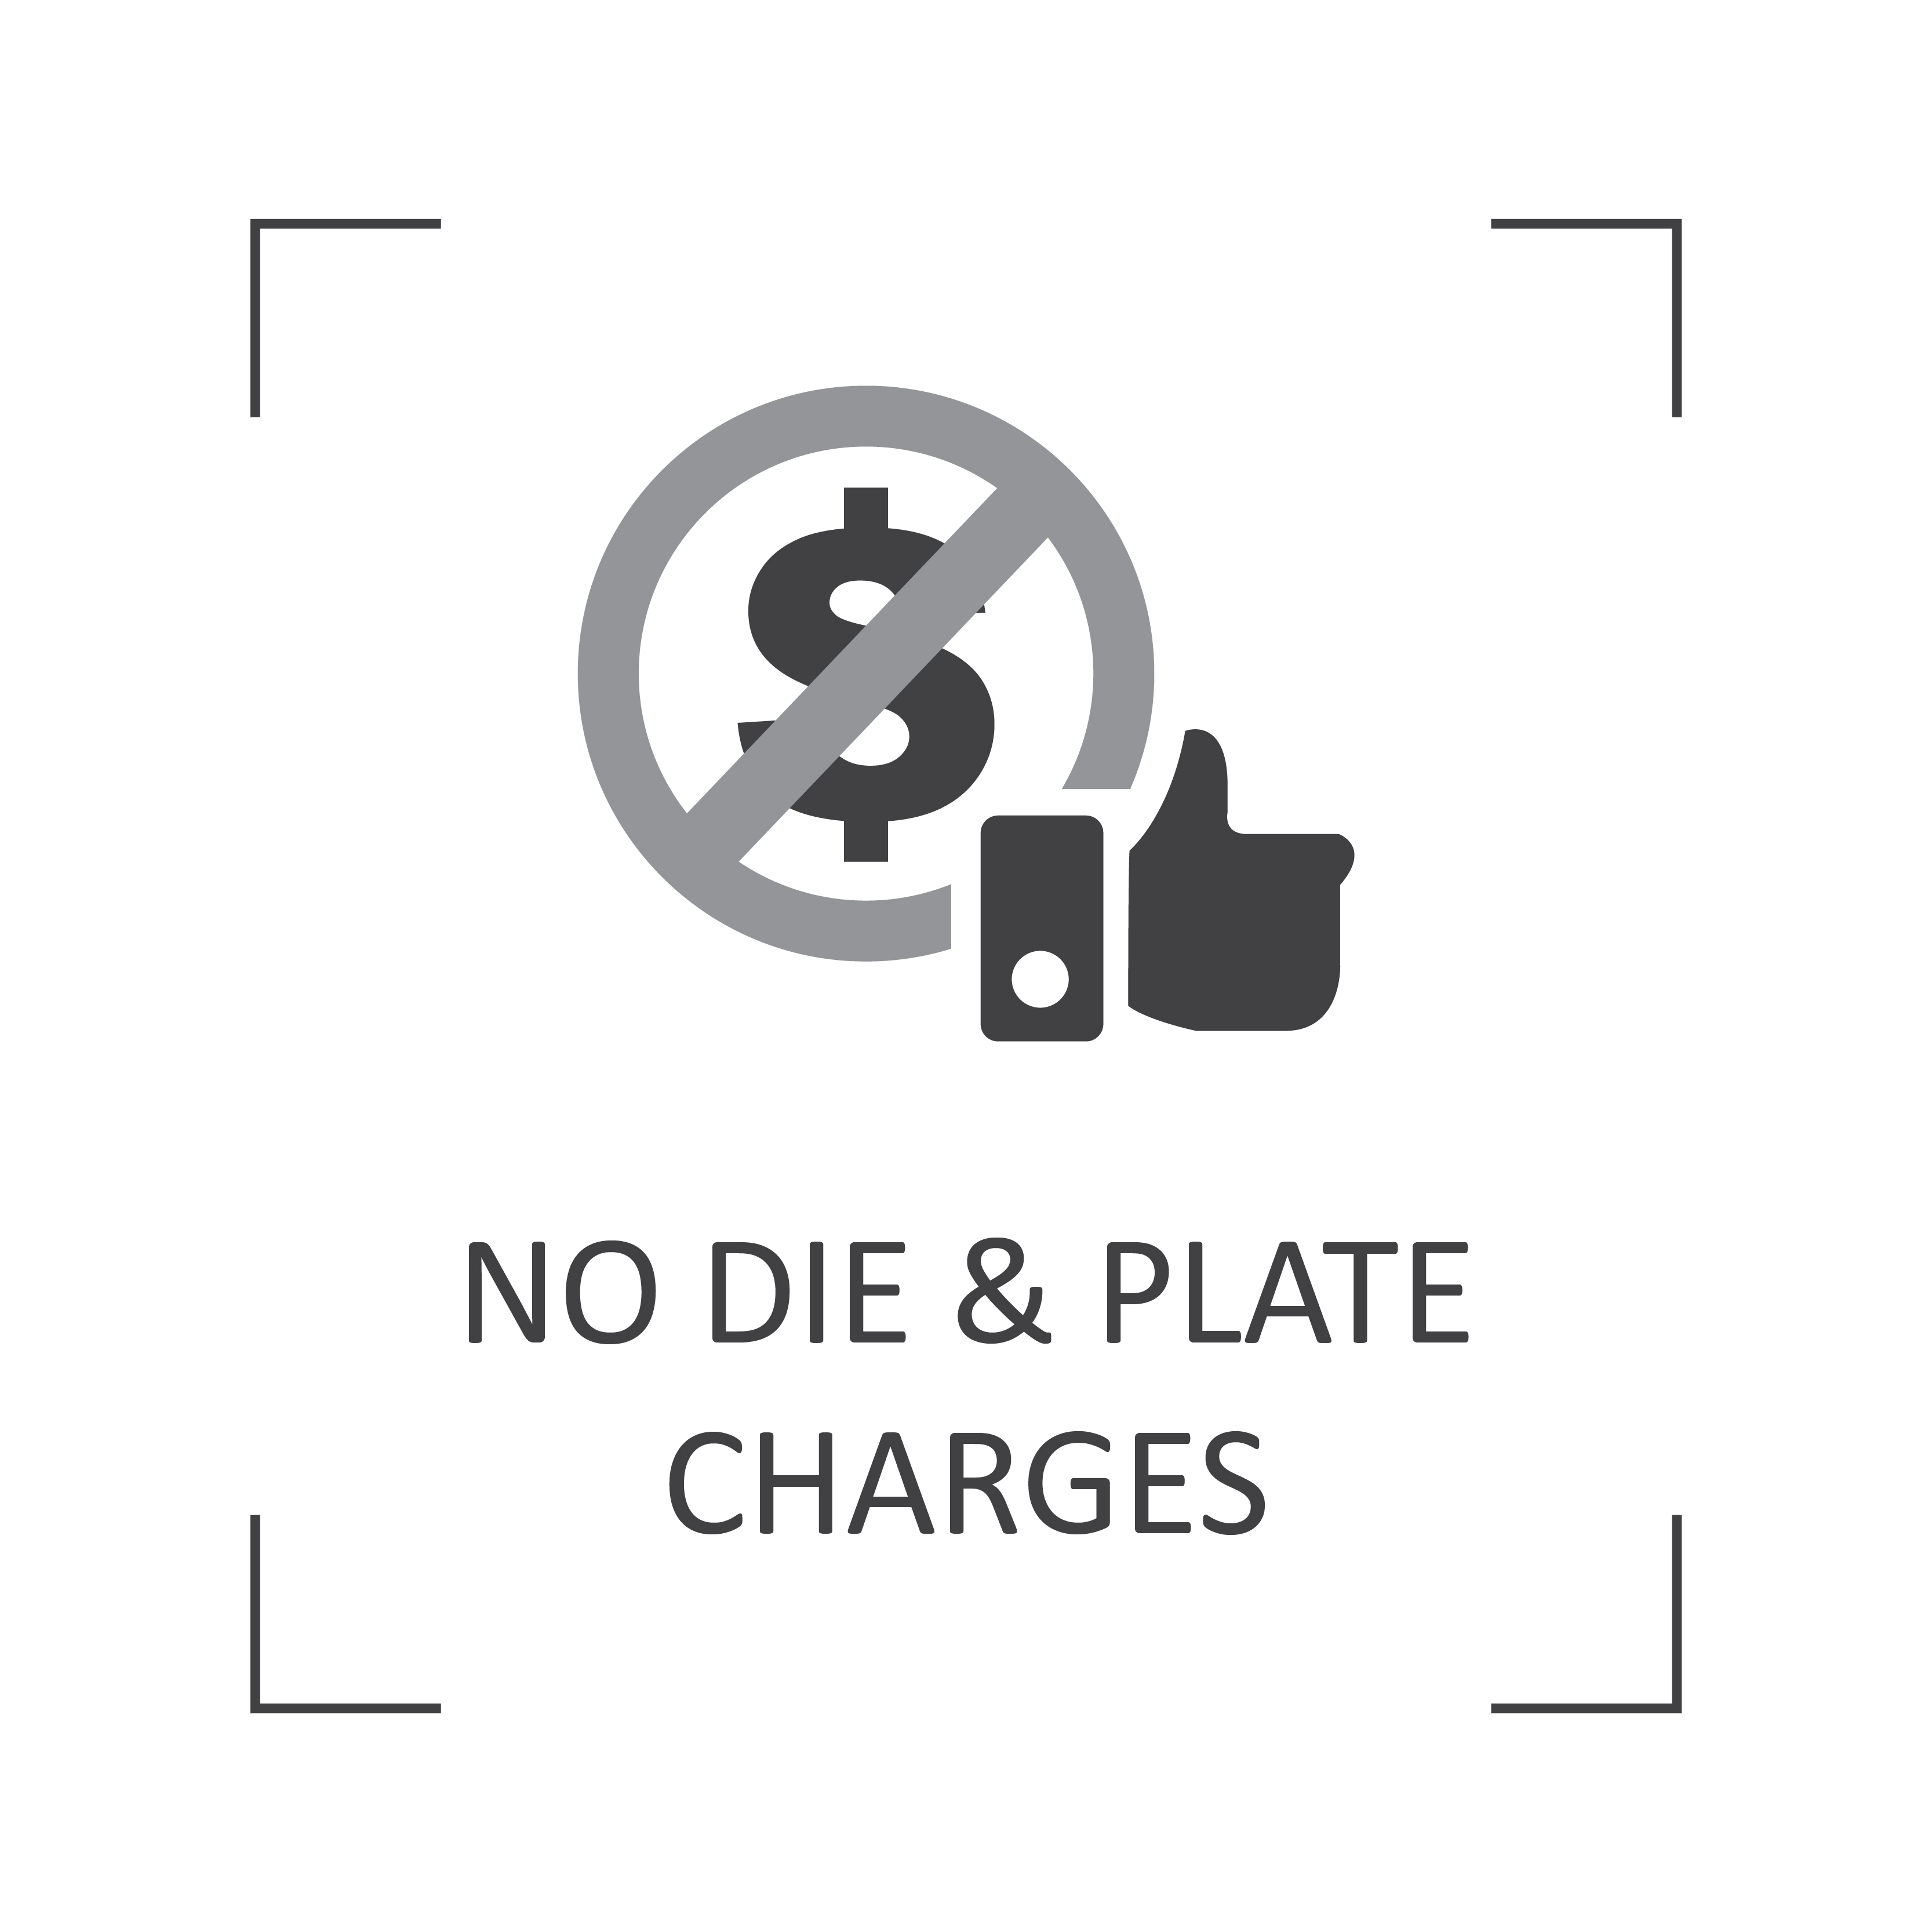 No die & plate charges